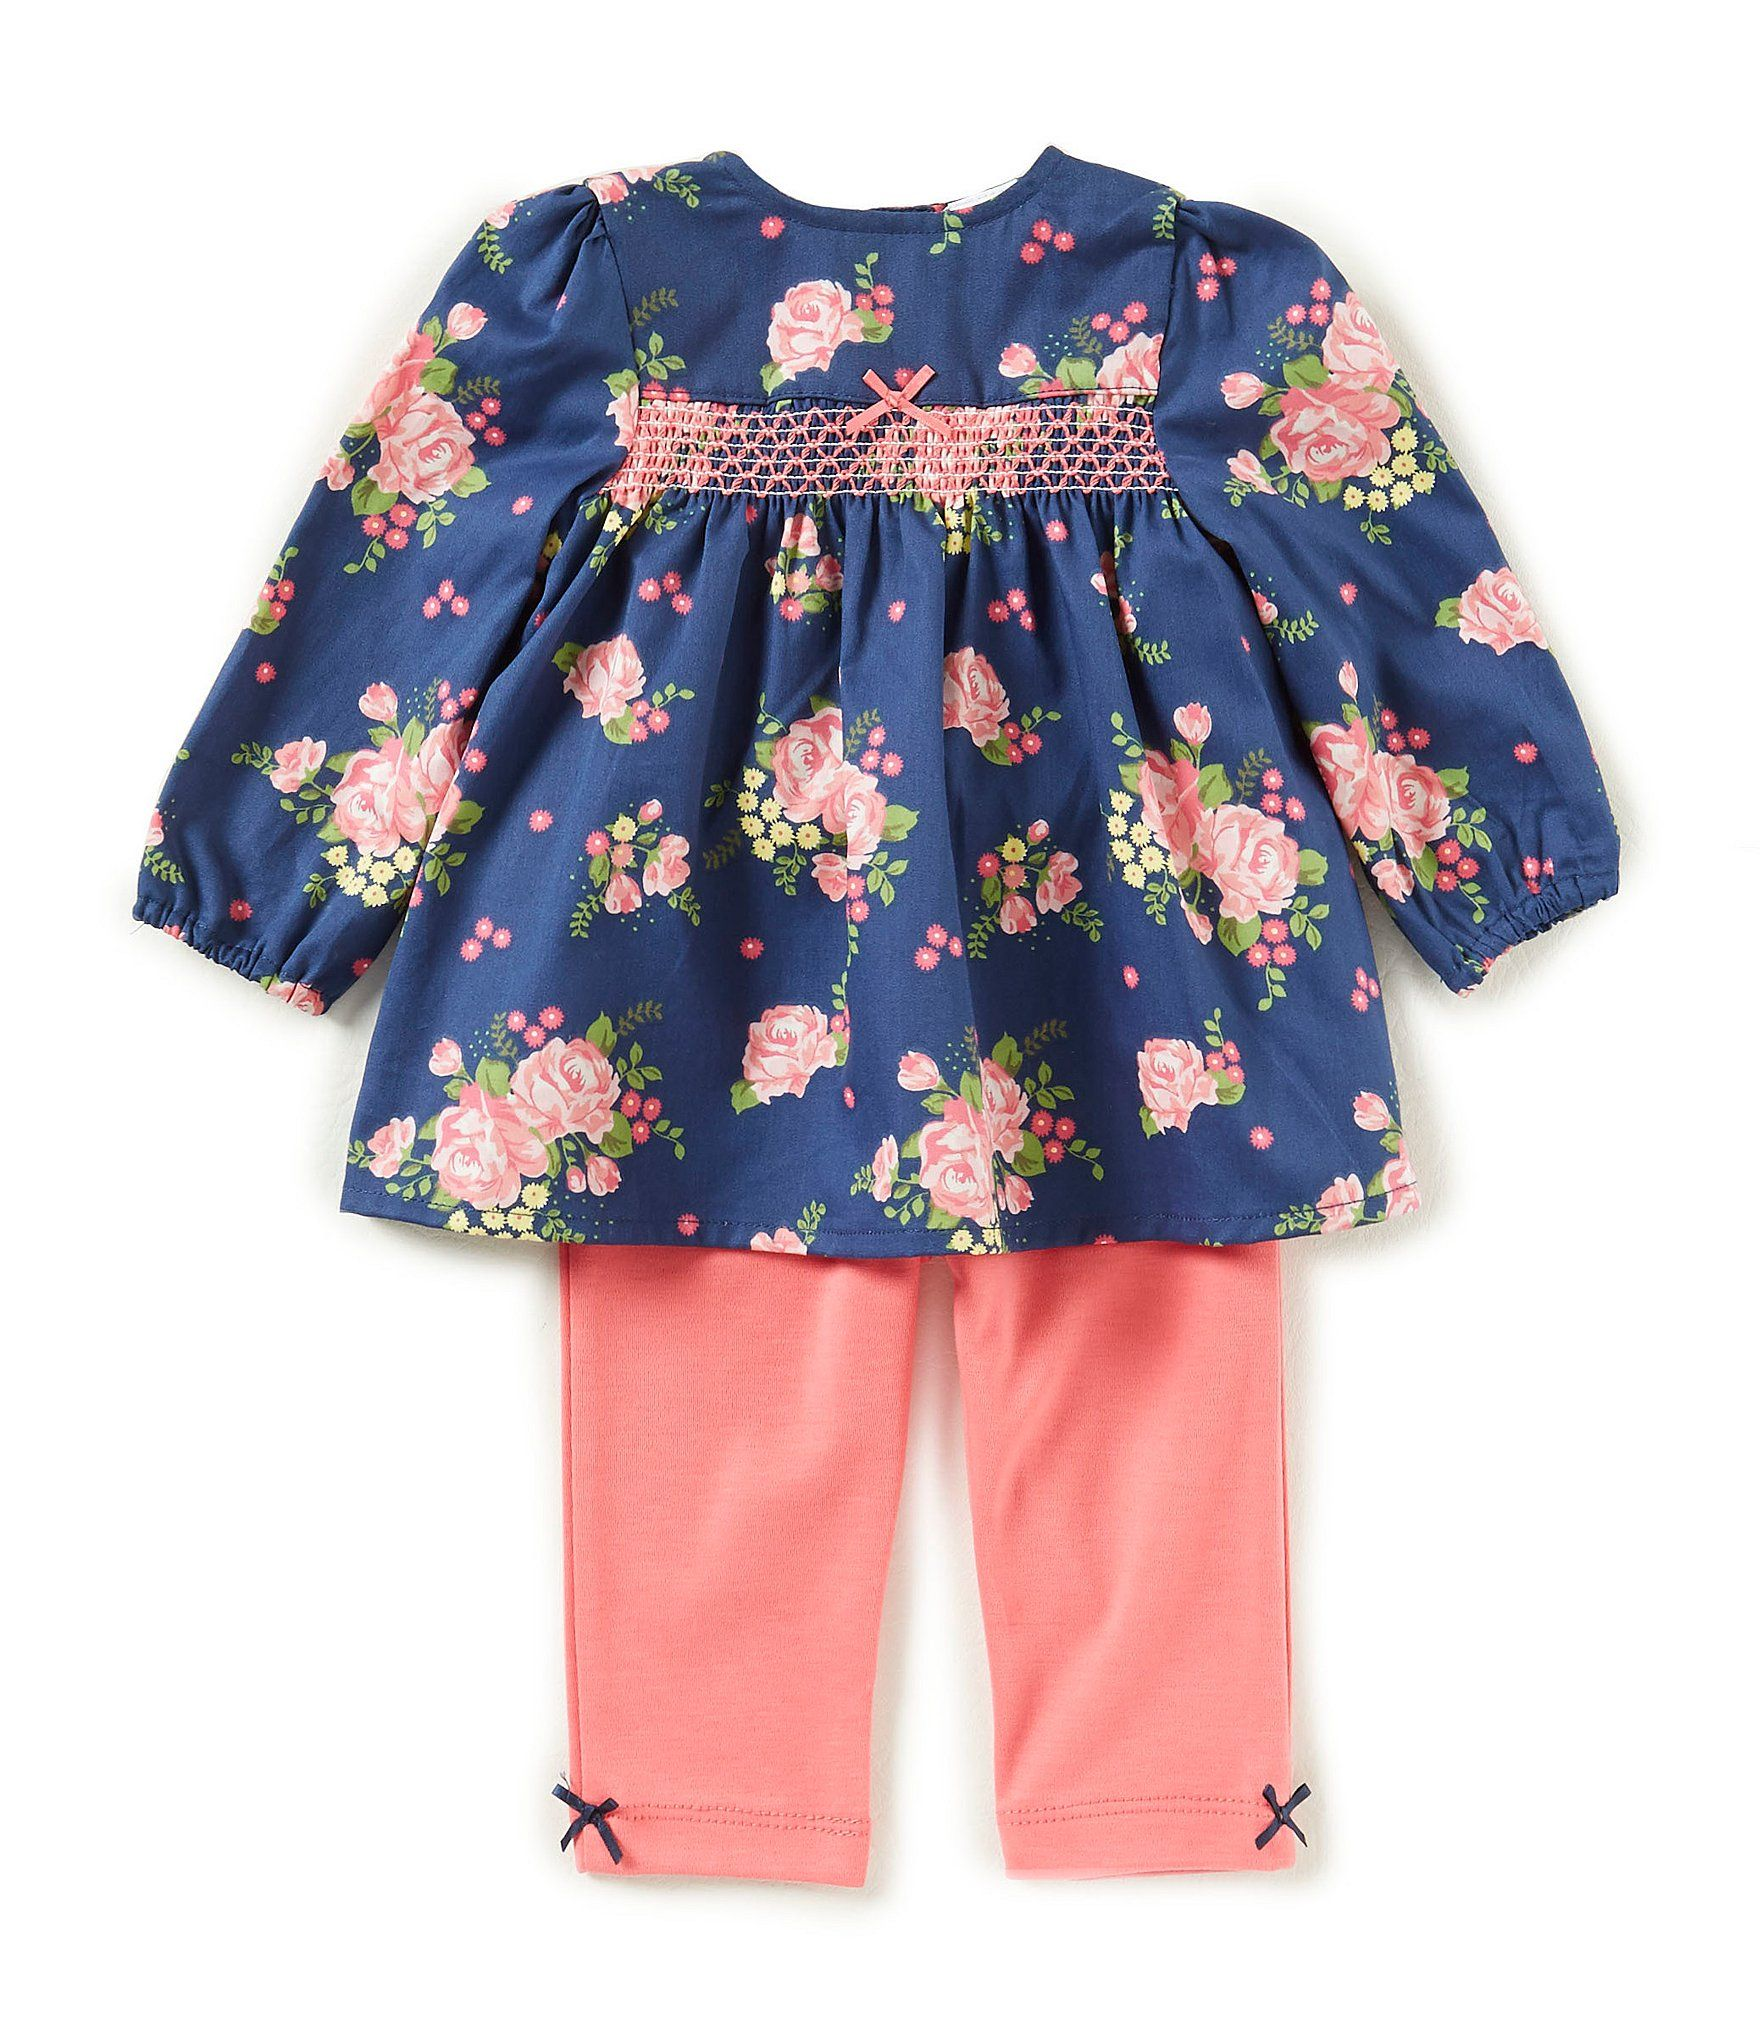 Shop for Little Me Baby Girls 3 12 Months Floral Print Top & Solid